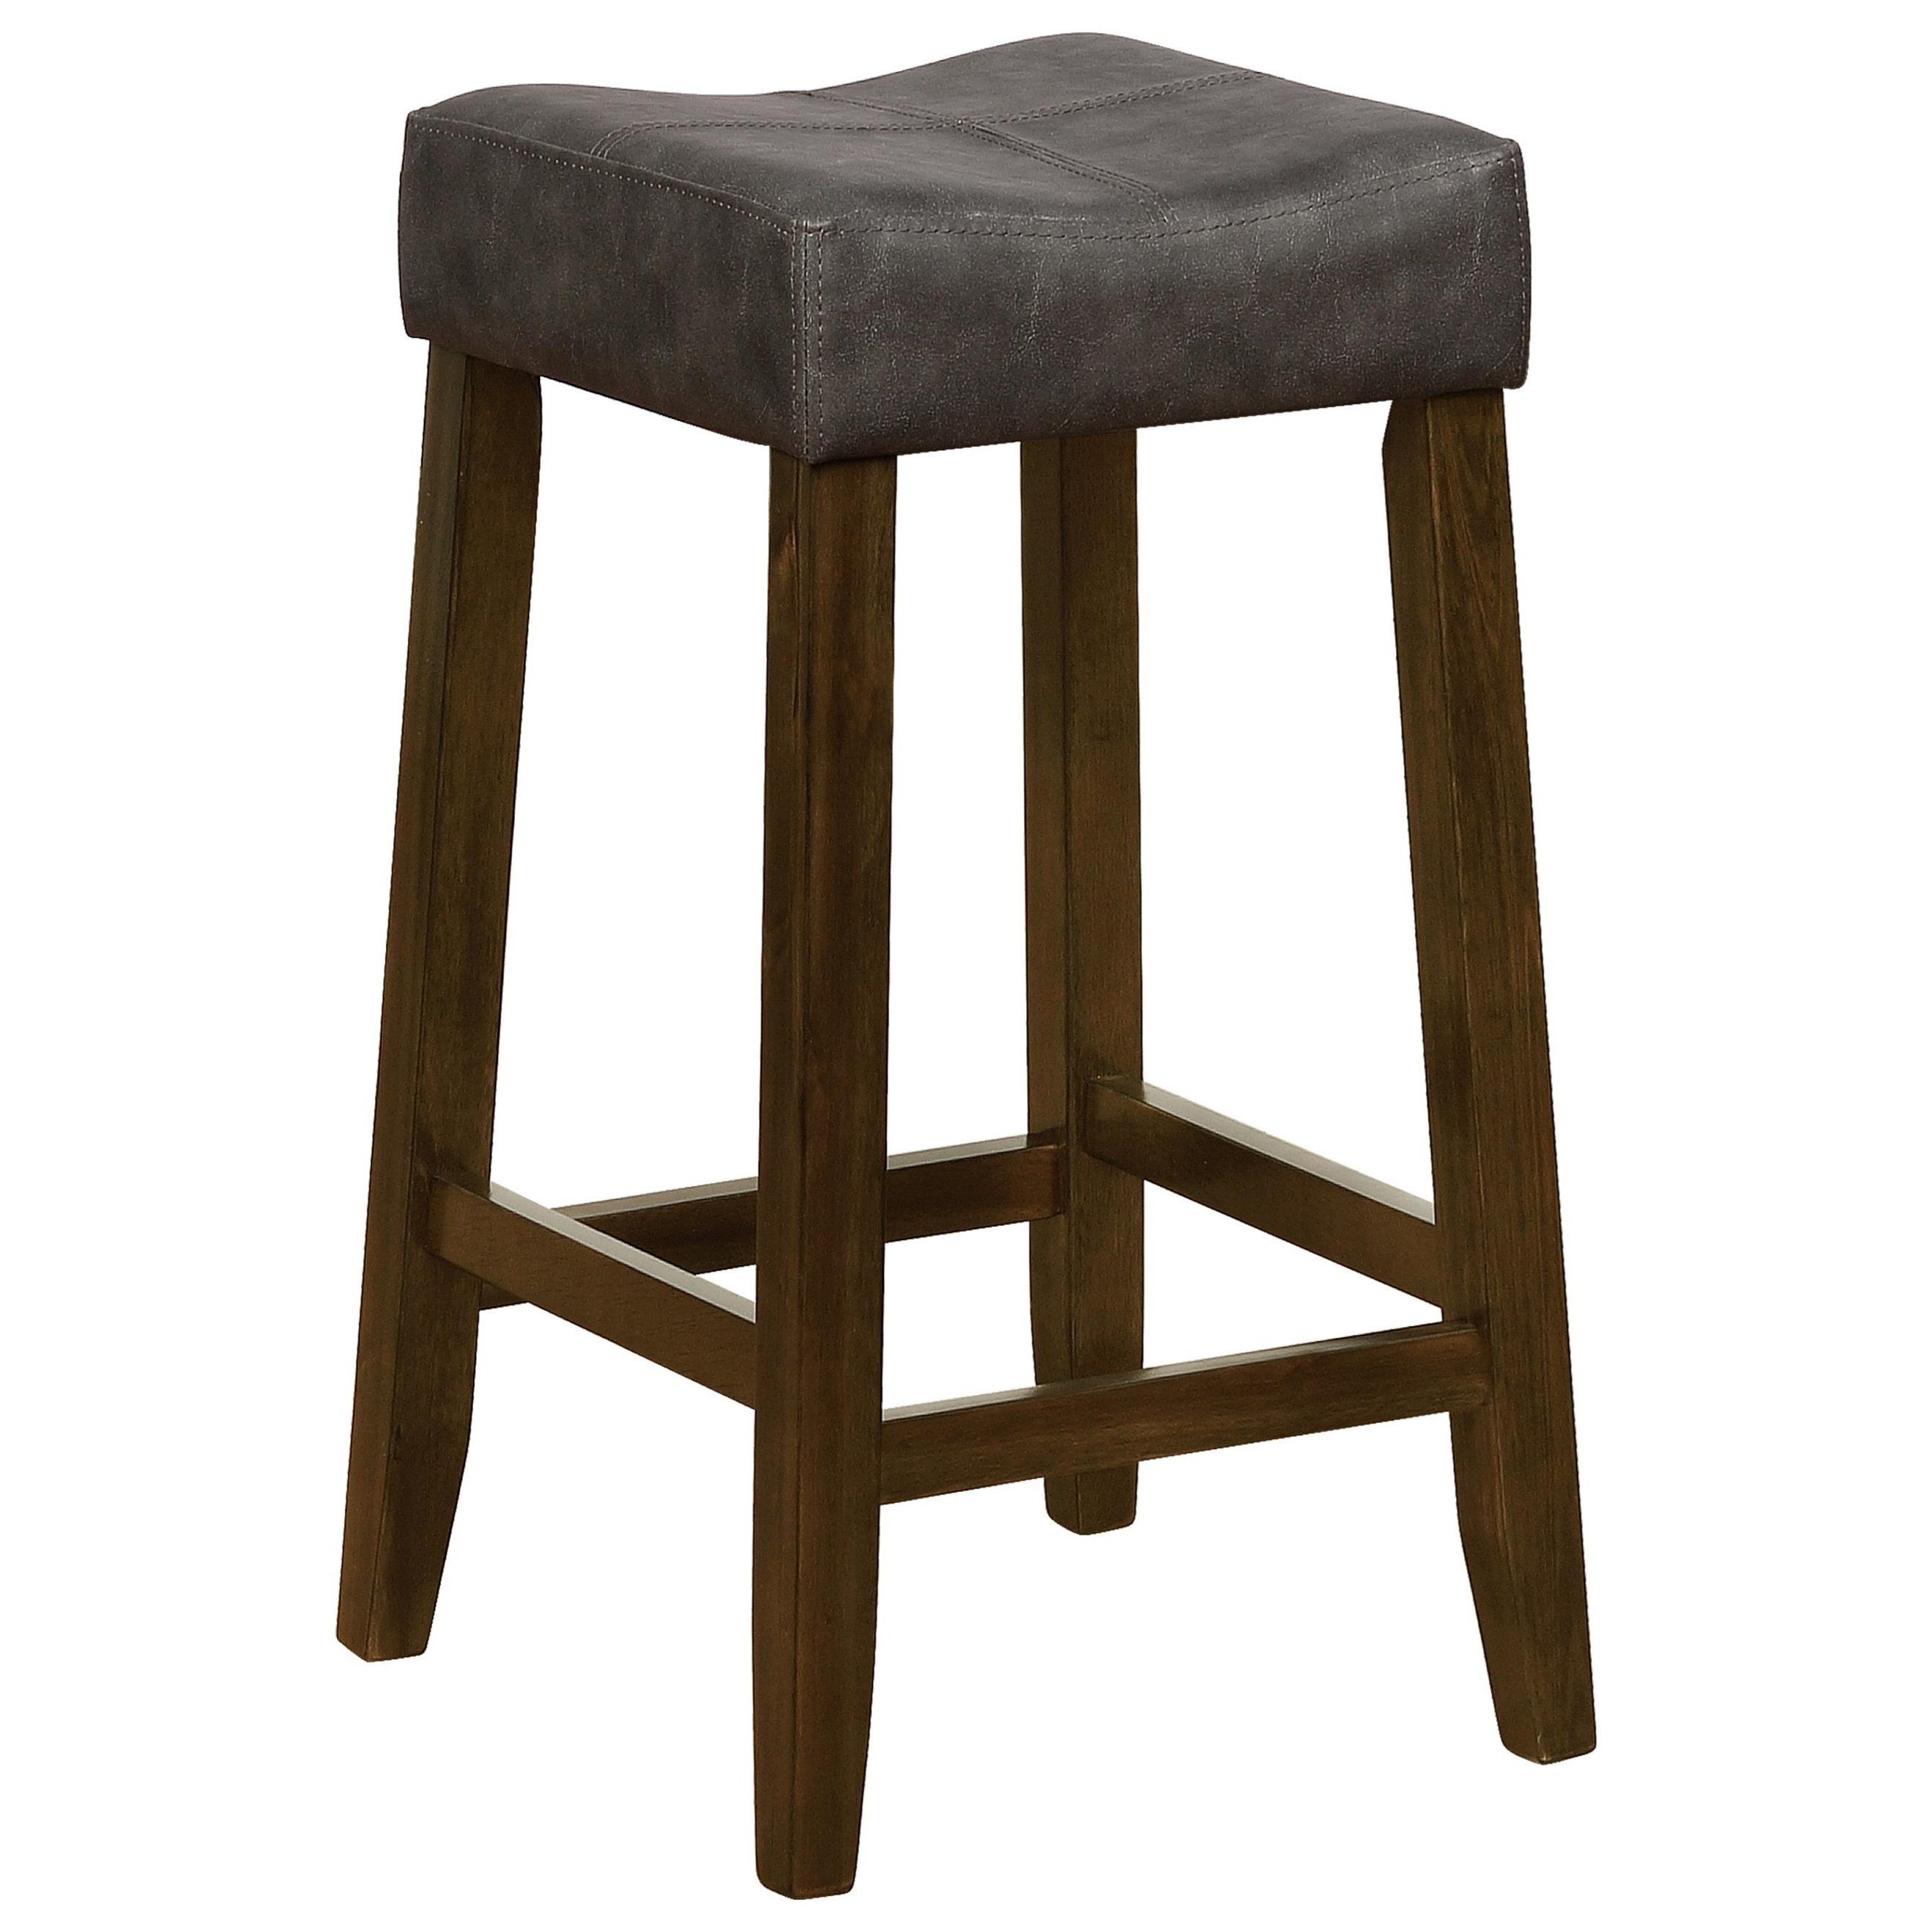 Incredible Bar Stools Cm Counter Height Stool Pabps2019 Chair Design Images Pabps2019Com